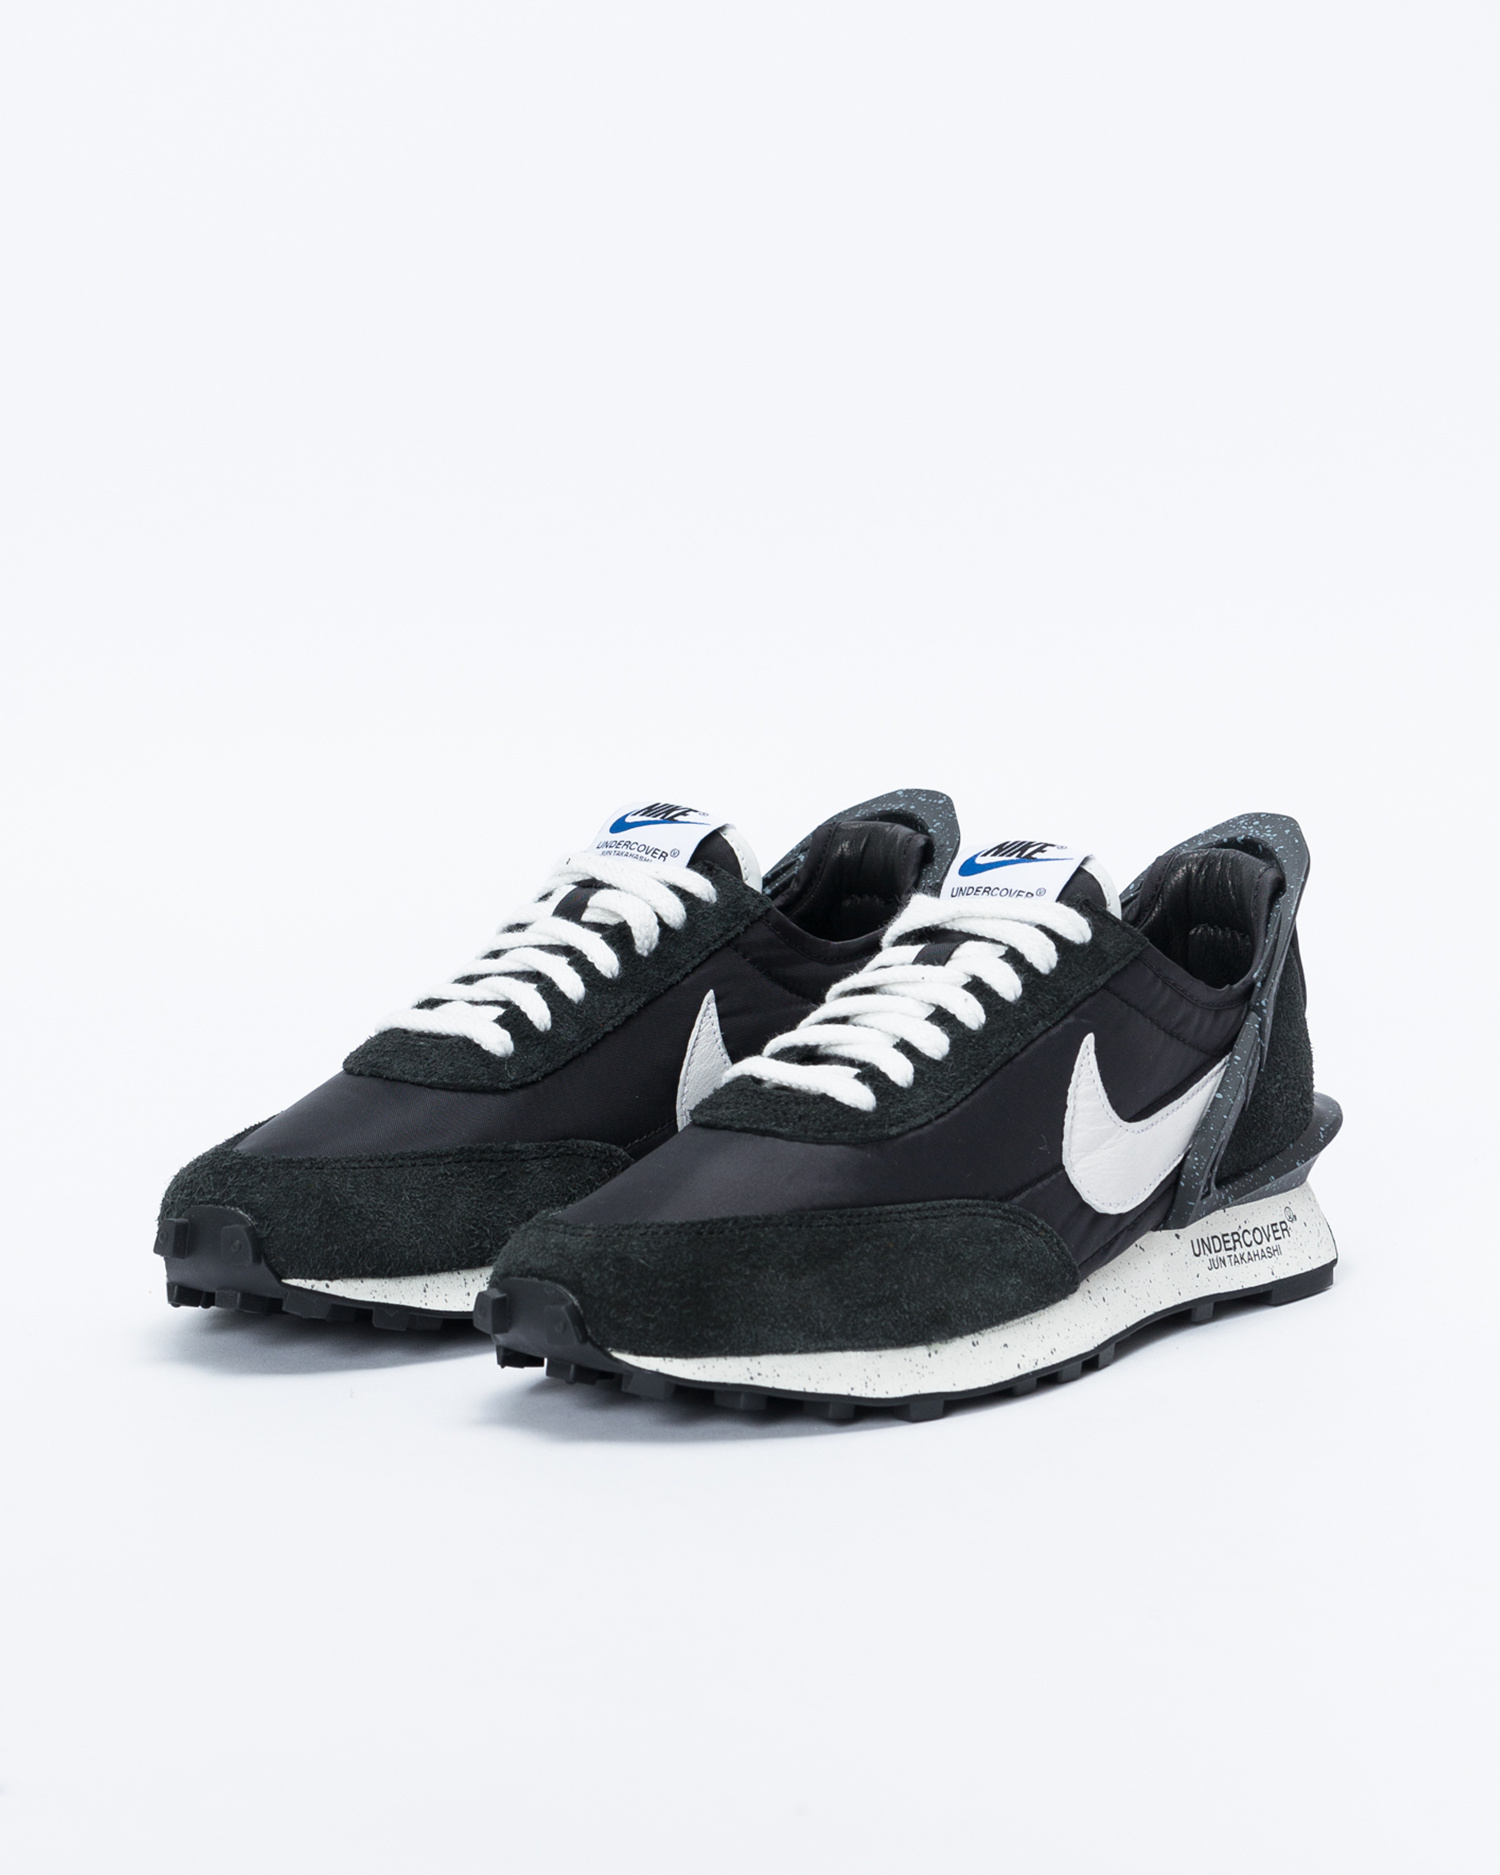 Nike X UNDERCOVER Daybreak Black/White-Summit White